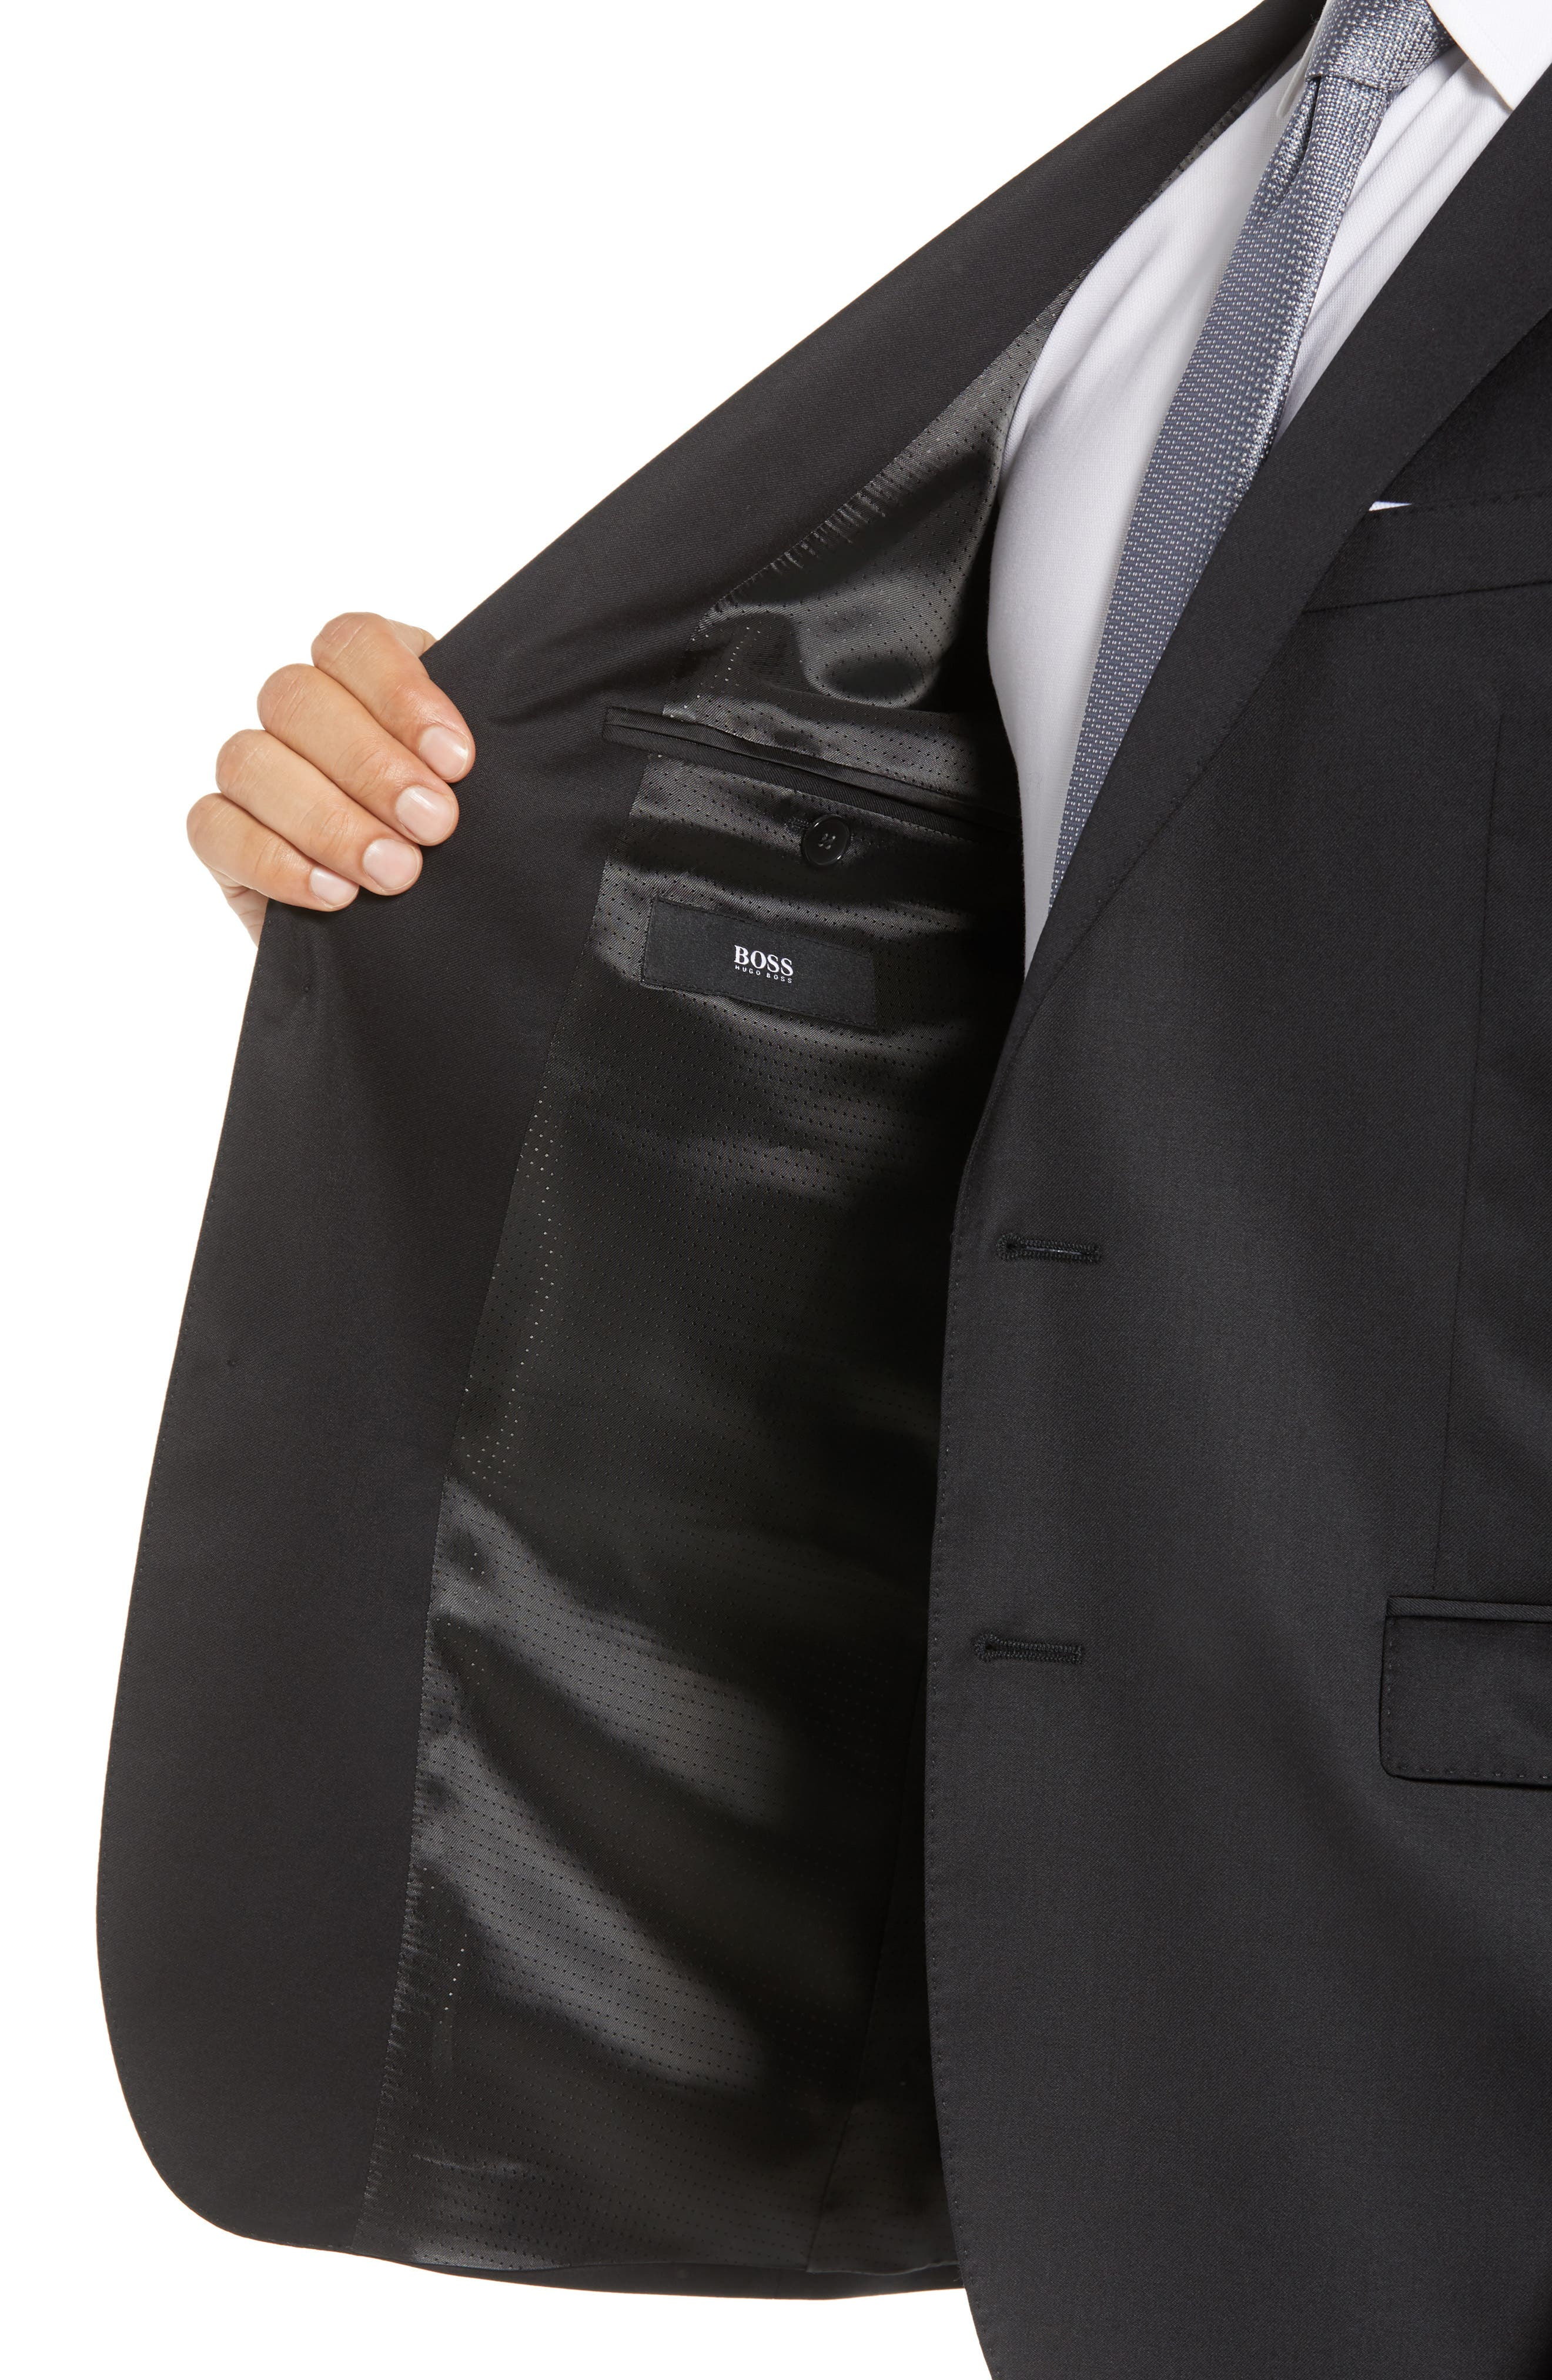 Ryan/Win Extra Trim Fit Solid Wool Suit,                             Alternate thumbnail 4, color,                             BLACK